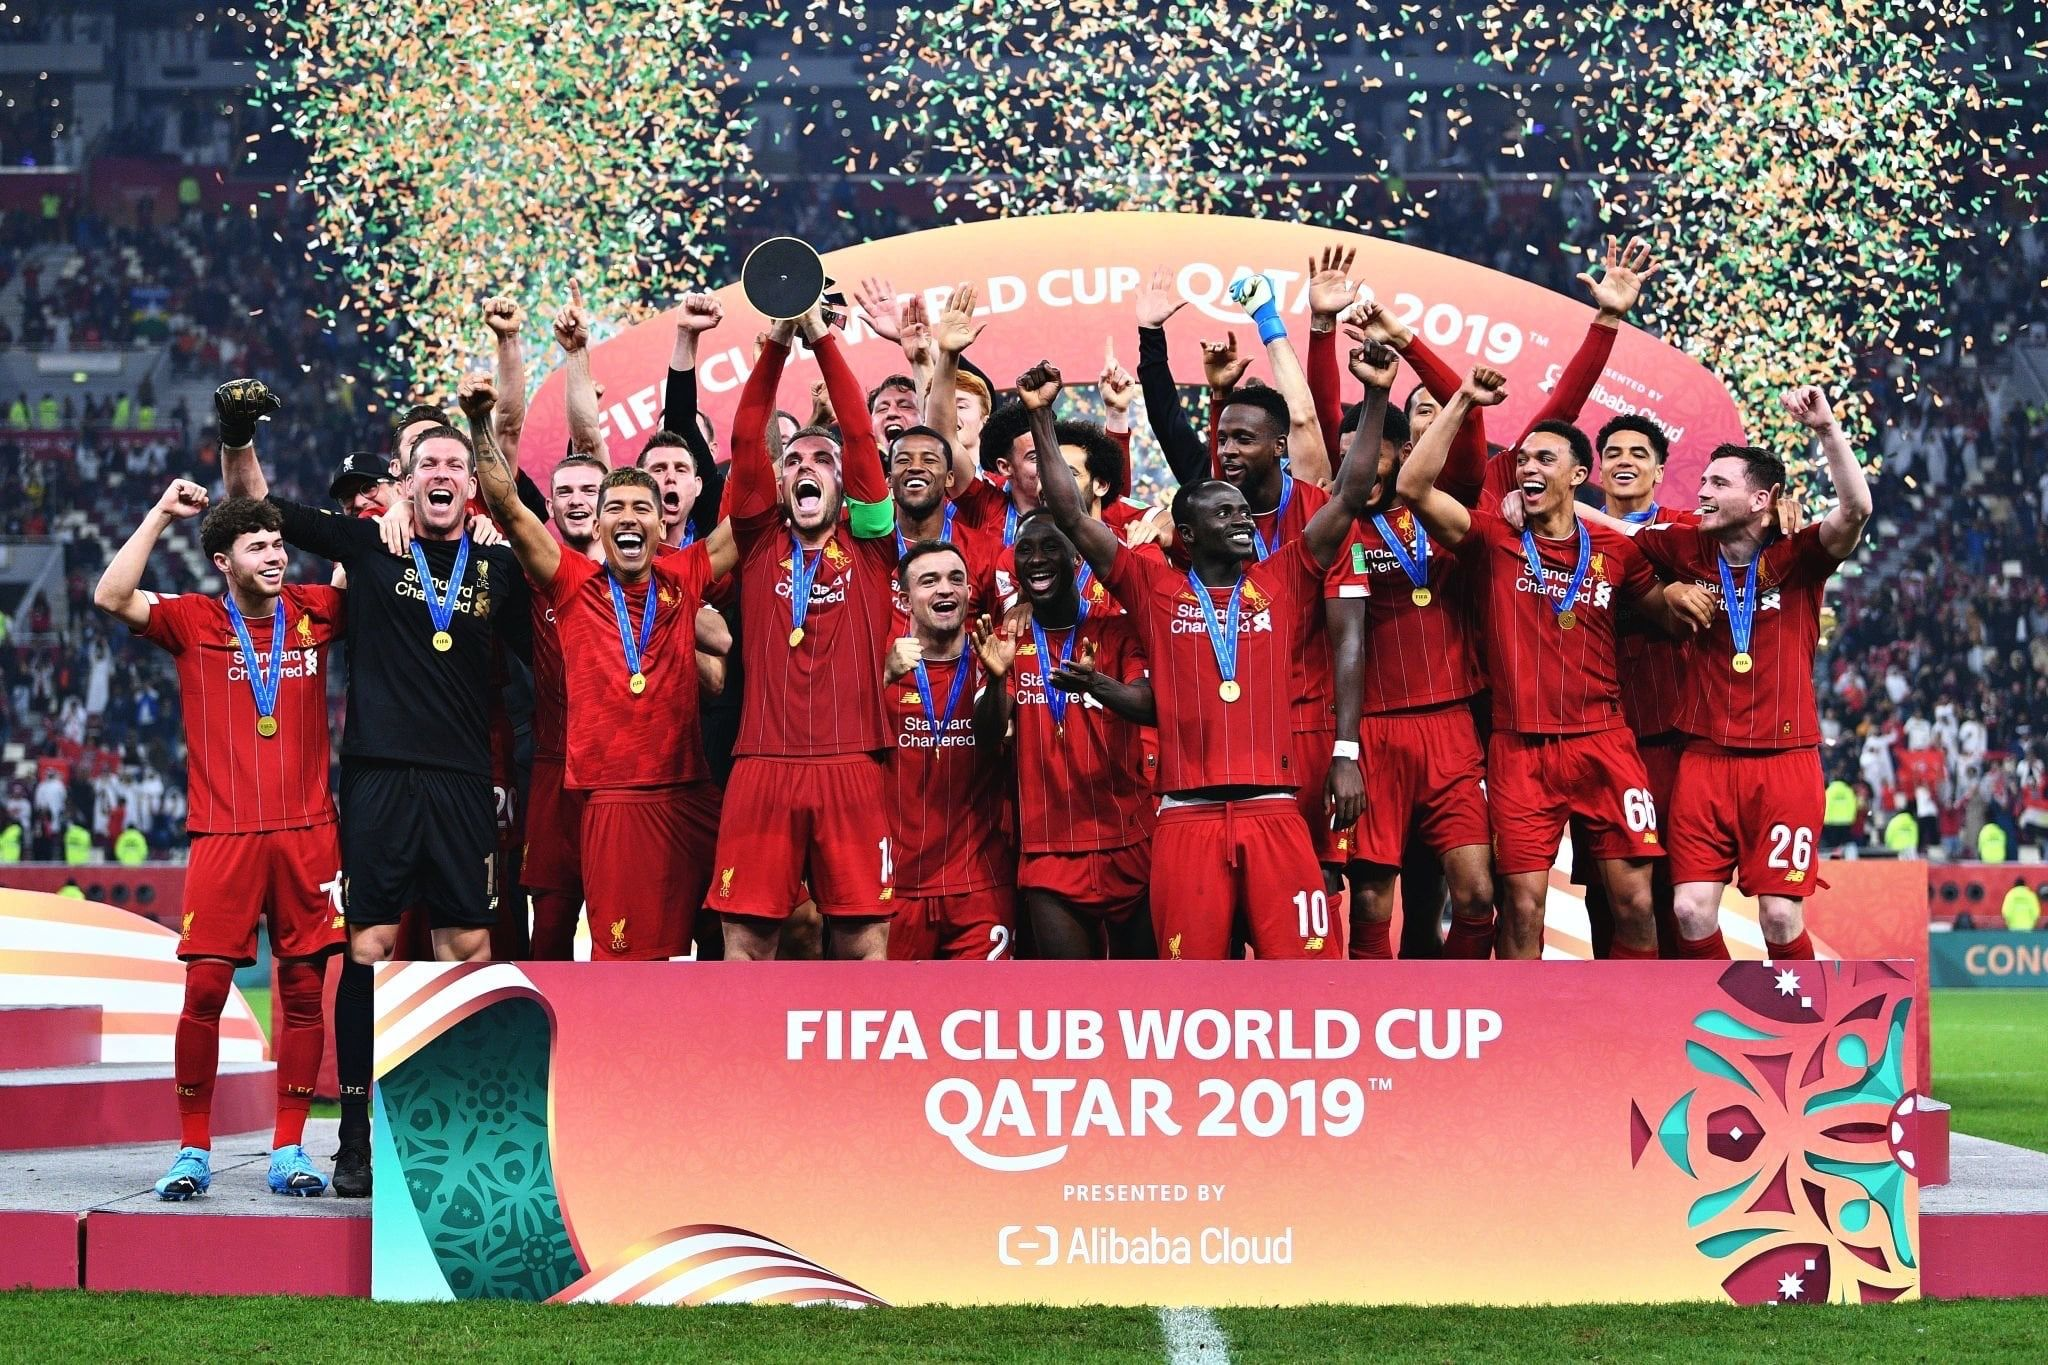 Pin By Keane V Chinea On Footy Club World Cup Liverpool Champions World Cup Champions